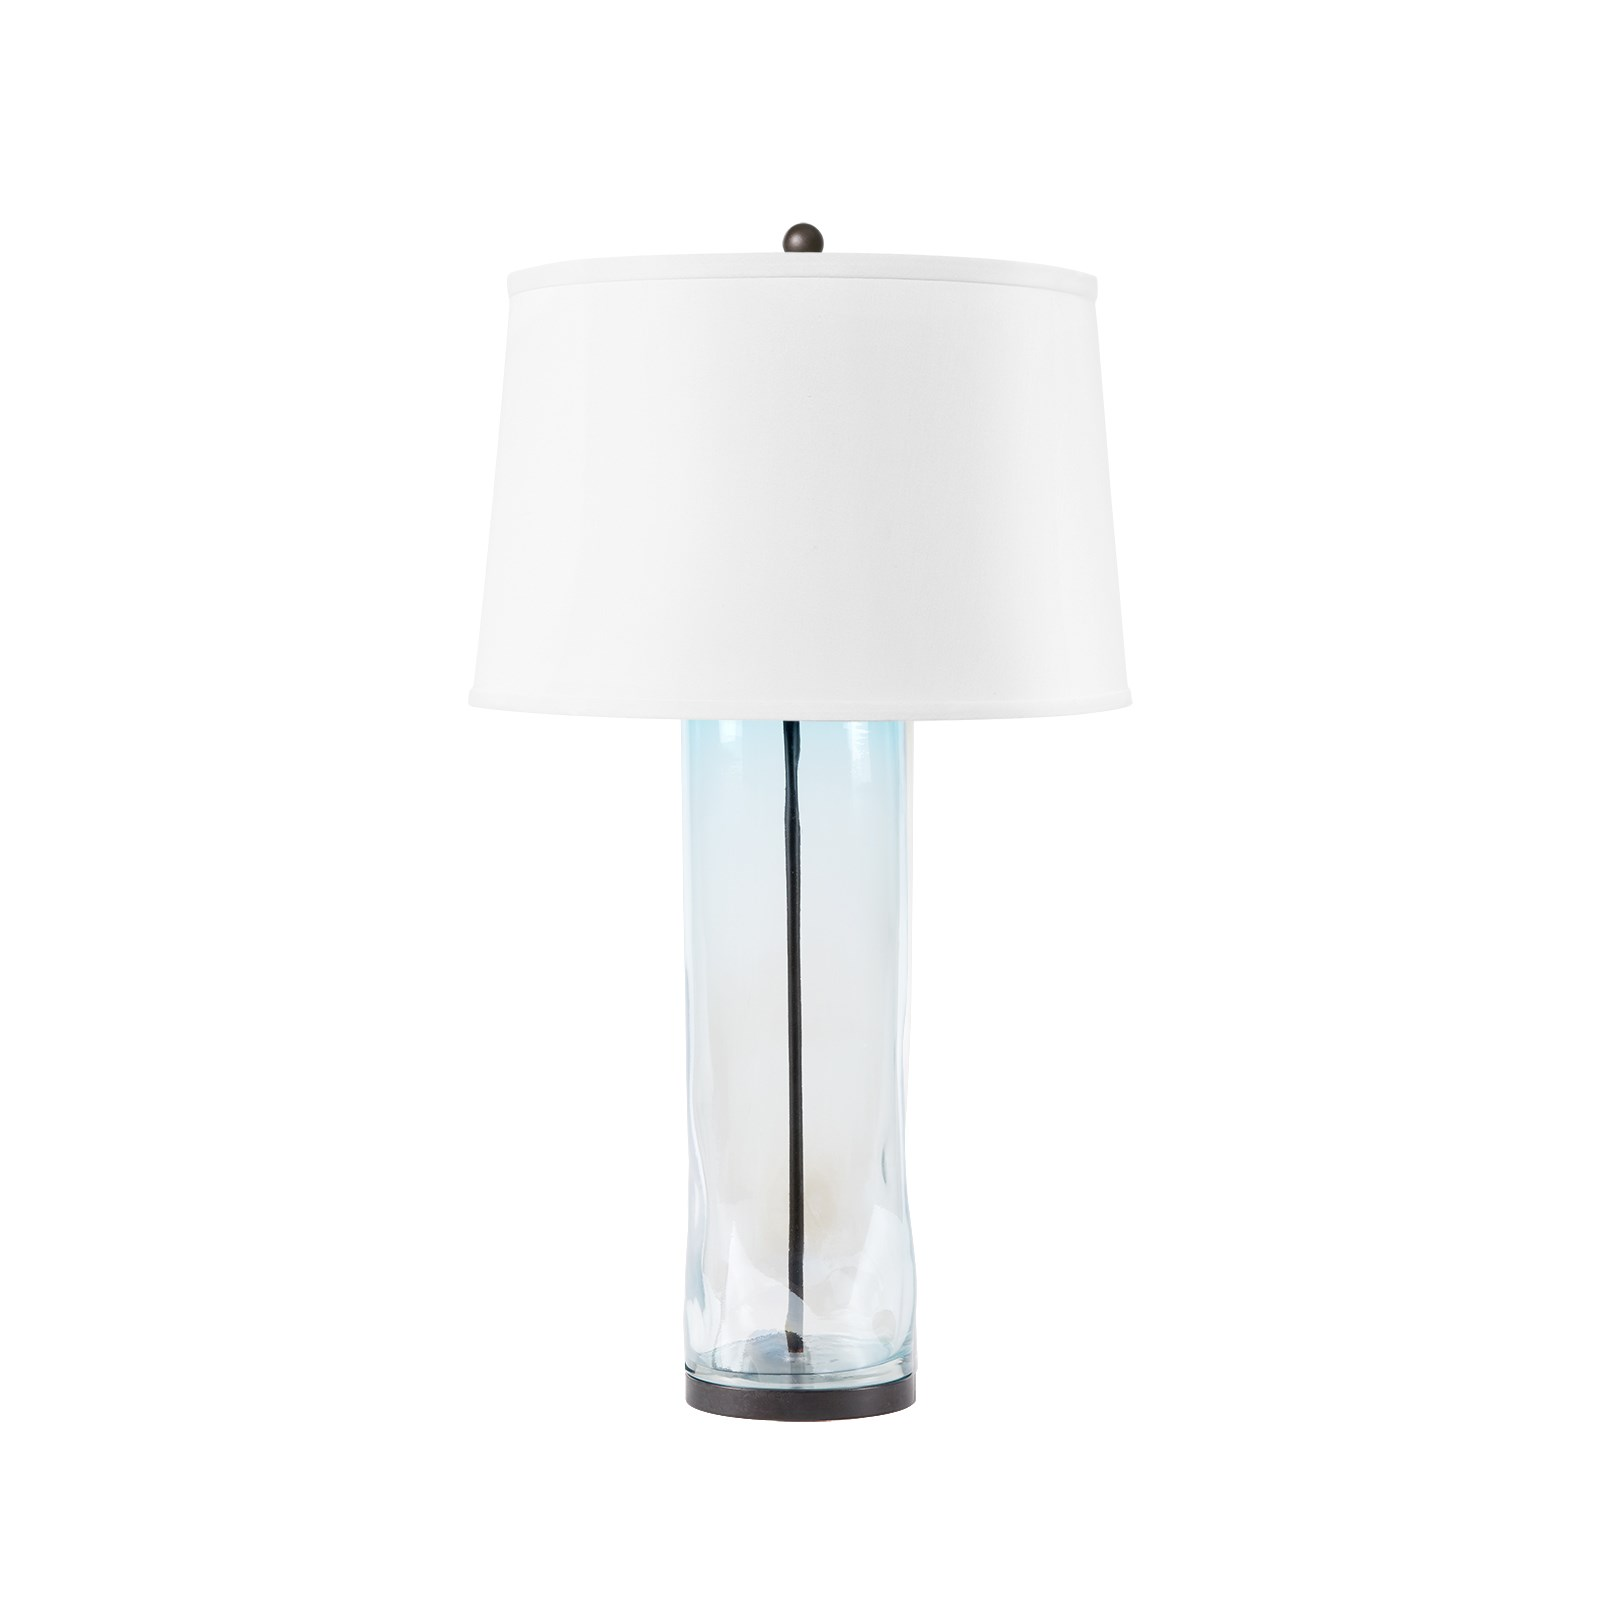 Clay Lamp (Lamp Only), Light Blue And Clear